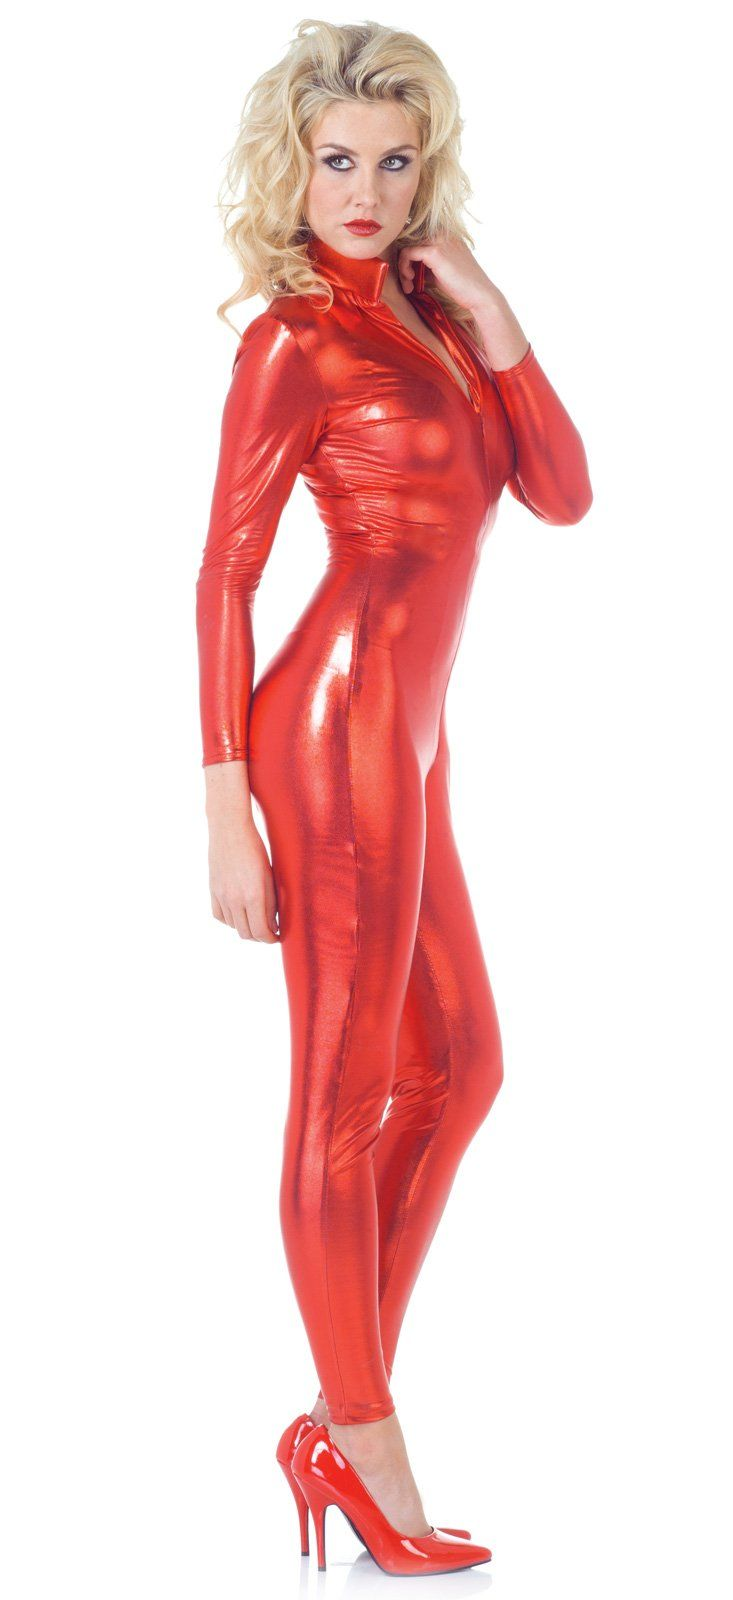 britney spears oops i did it again costume i think i - Britney Spears Red Jumpsuit Halloween Costume